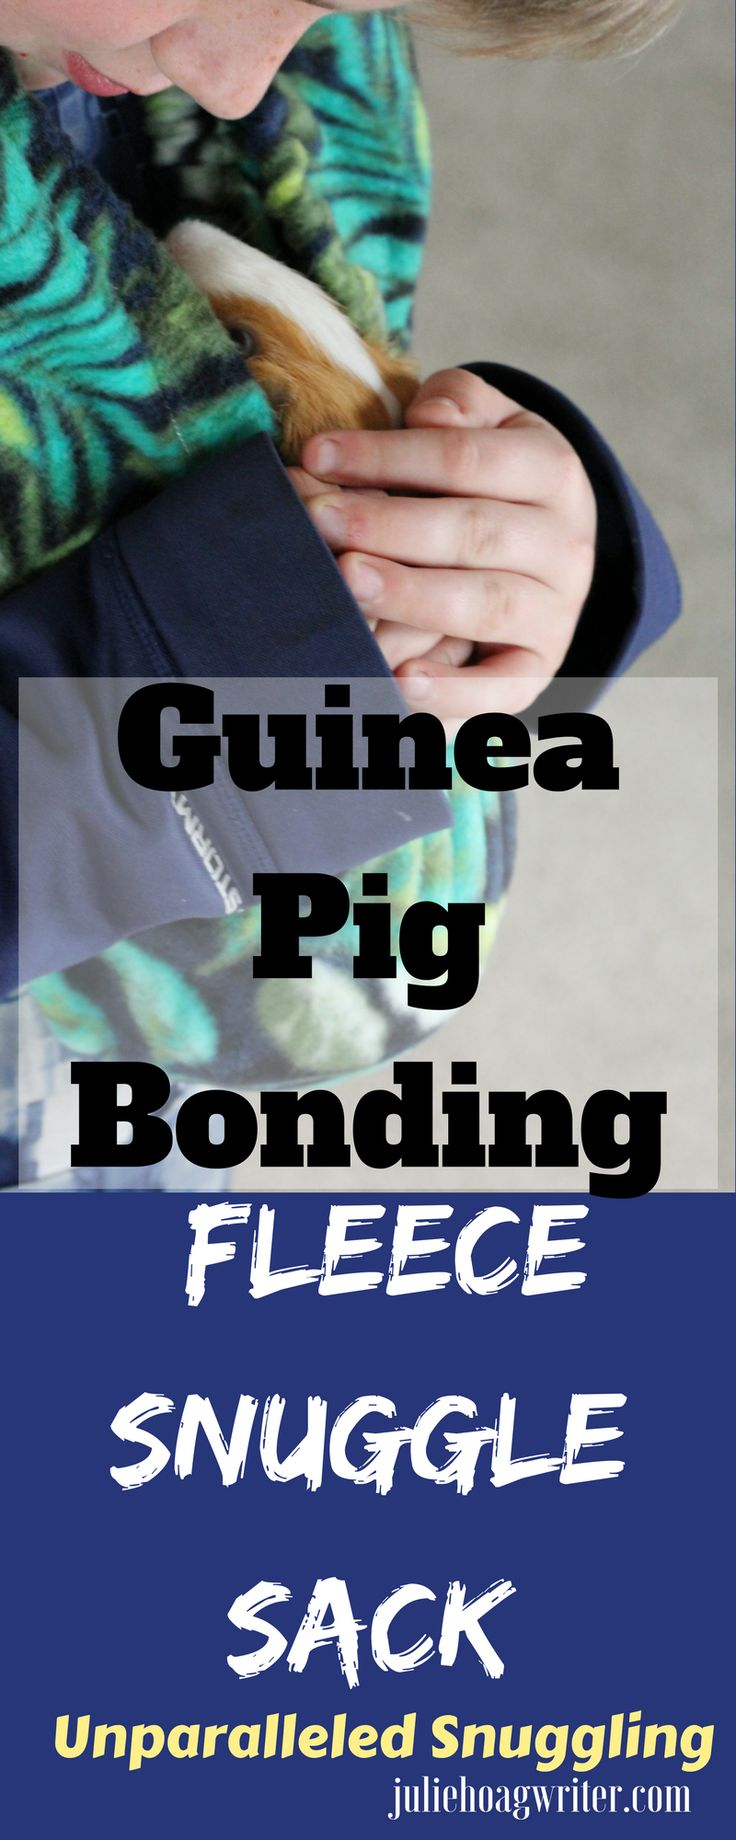 Guinea pig fleece snuggle sack for unparalleled bonding time with a pet guinea pig. This guinea pig bonding bag is a simple, yet innovactive design that promotes bonding with guinea pigs plus reduces their anxiety. This guinea pig carrier allows the cavy to go along with the owner around the house, on walks. #guineapig #guineapigs #guineapigfleece #guineapigbondingbag #pettravelcarrier #petlifehacks #petcare #healthypet #pets #kidspet #guineapigcaretips